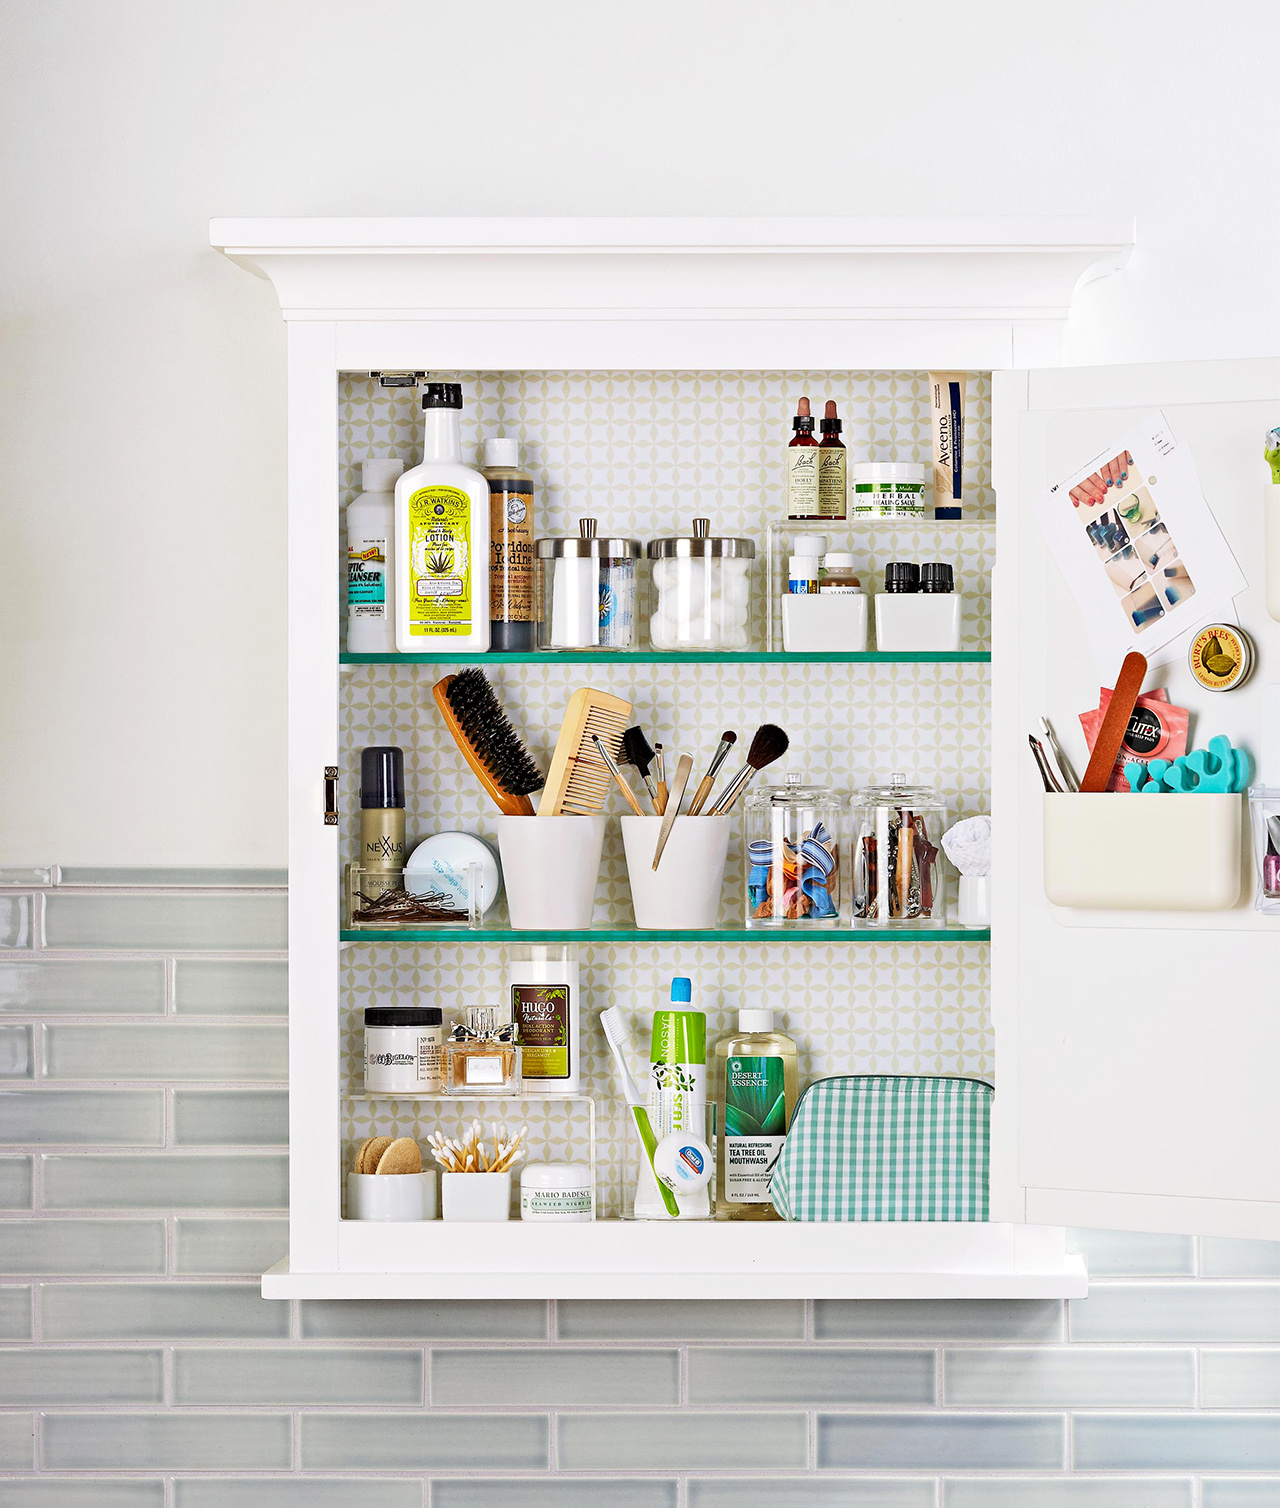 11 Clever Ways to Organize Bathroom Cabinets  Better Homes & Gardens